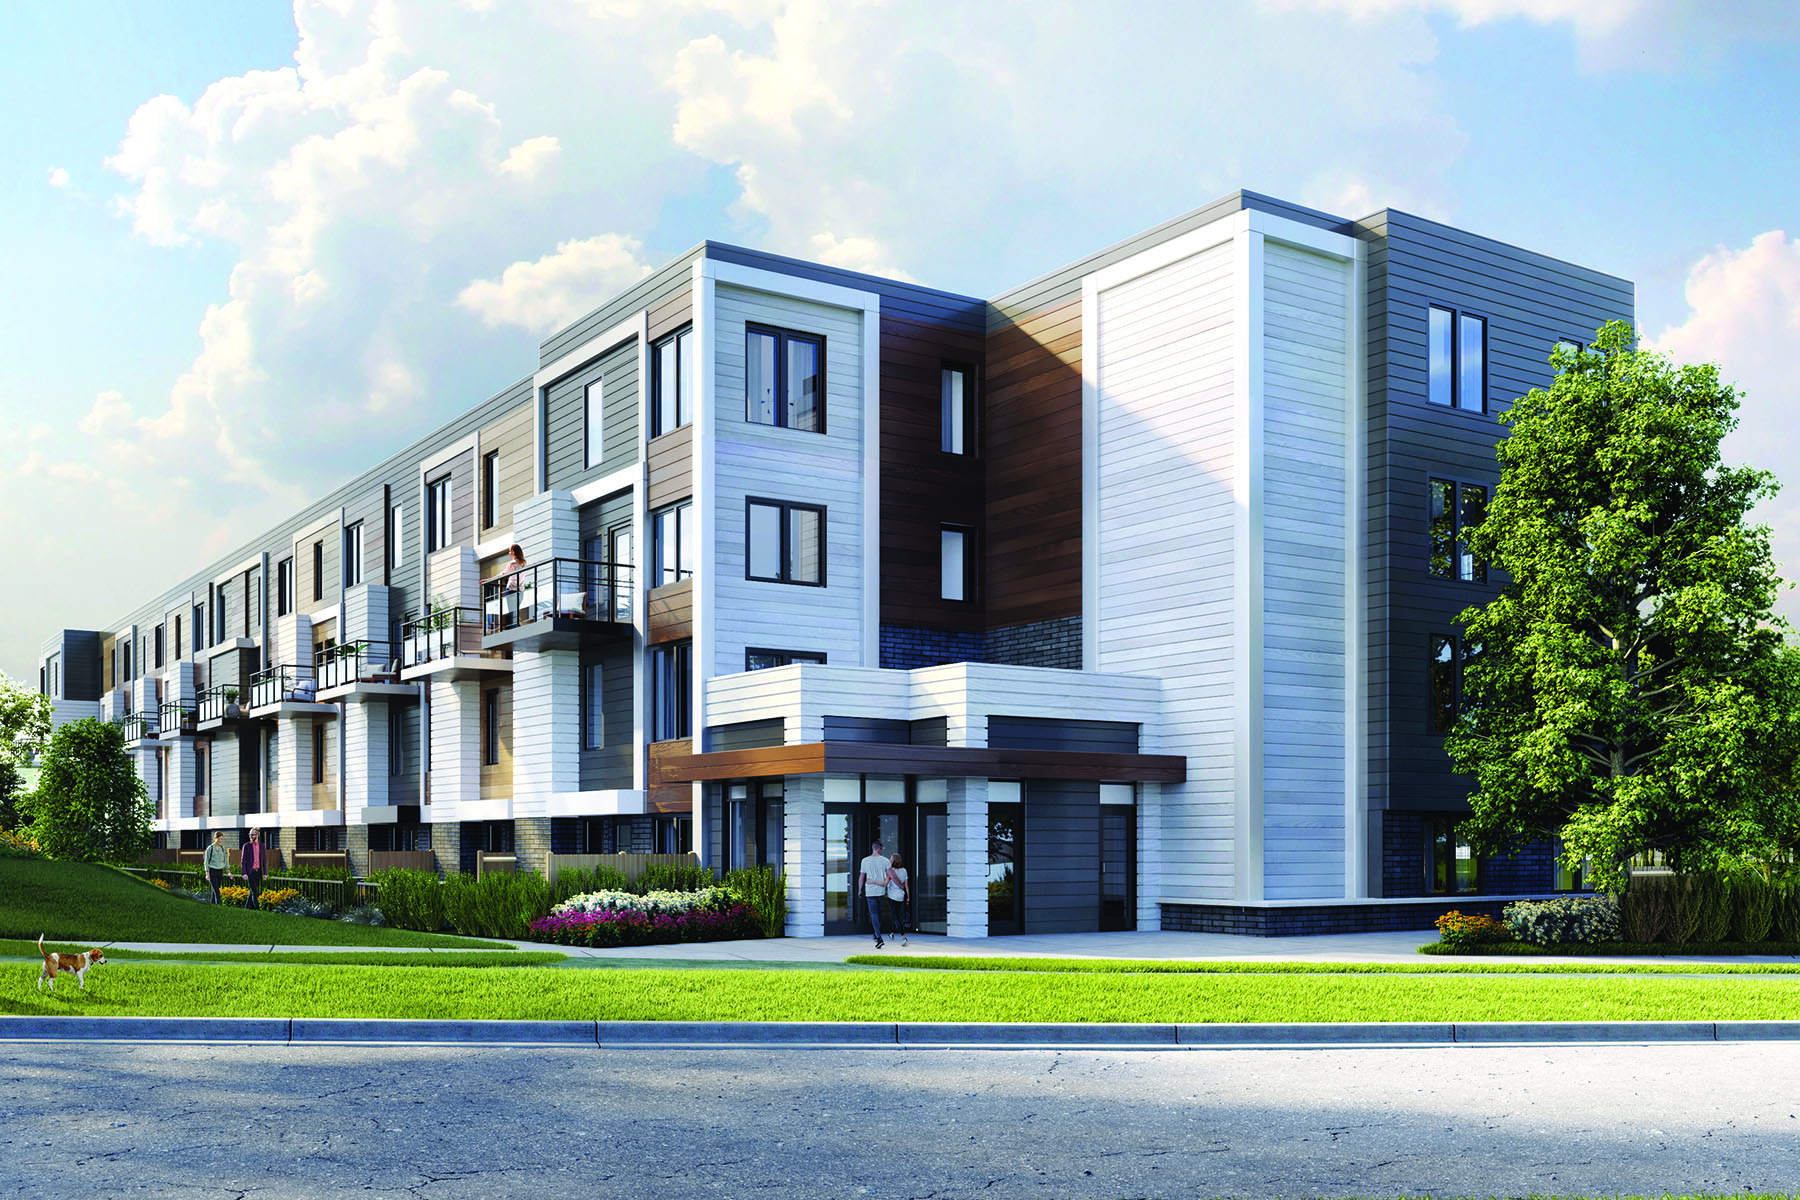 The Tamarack Plan urbantown_saturdayindownsviewpark_hickory at Parkside Towns At Saturday In Downsview Park in Toronto Ontario by Mattamy Homes